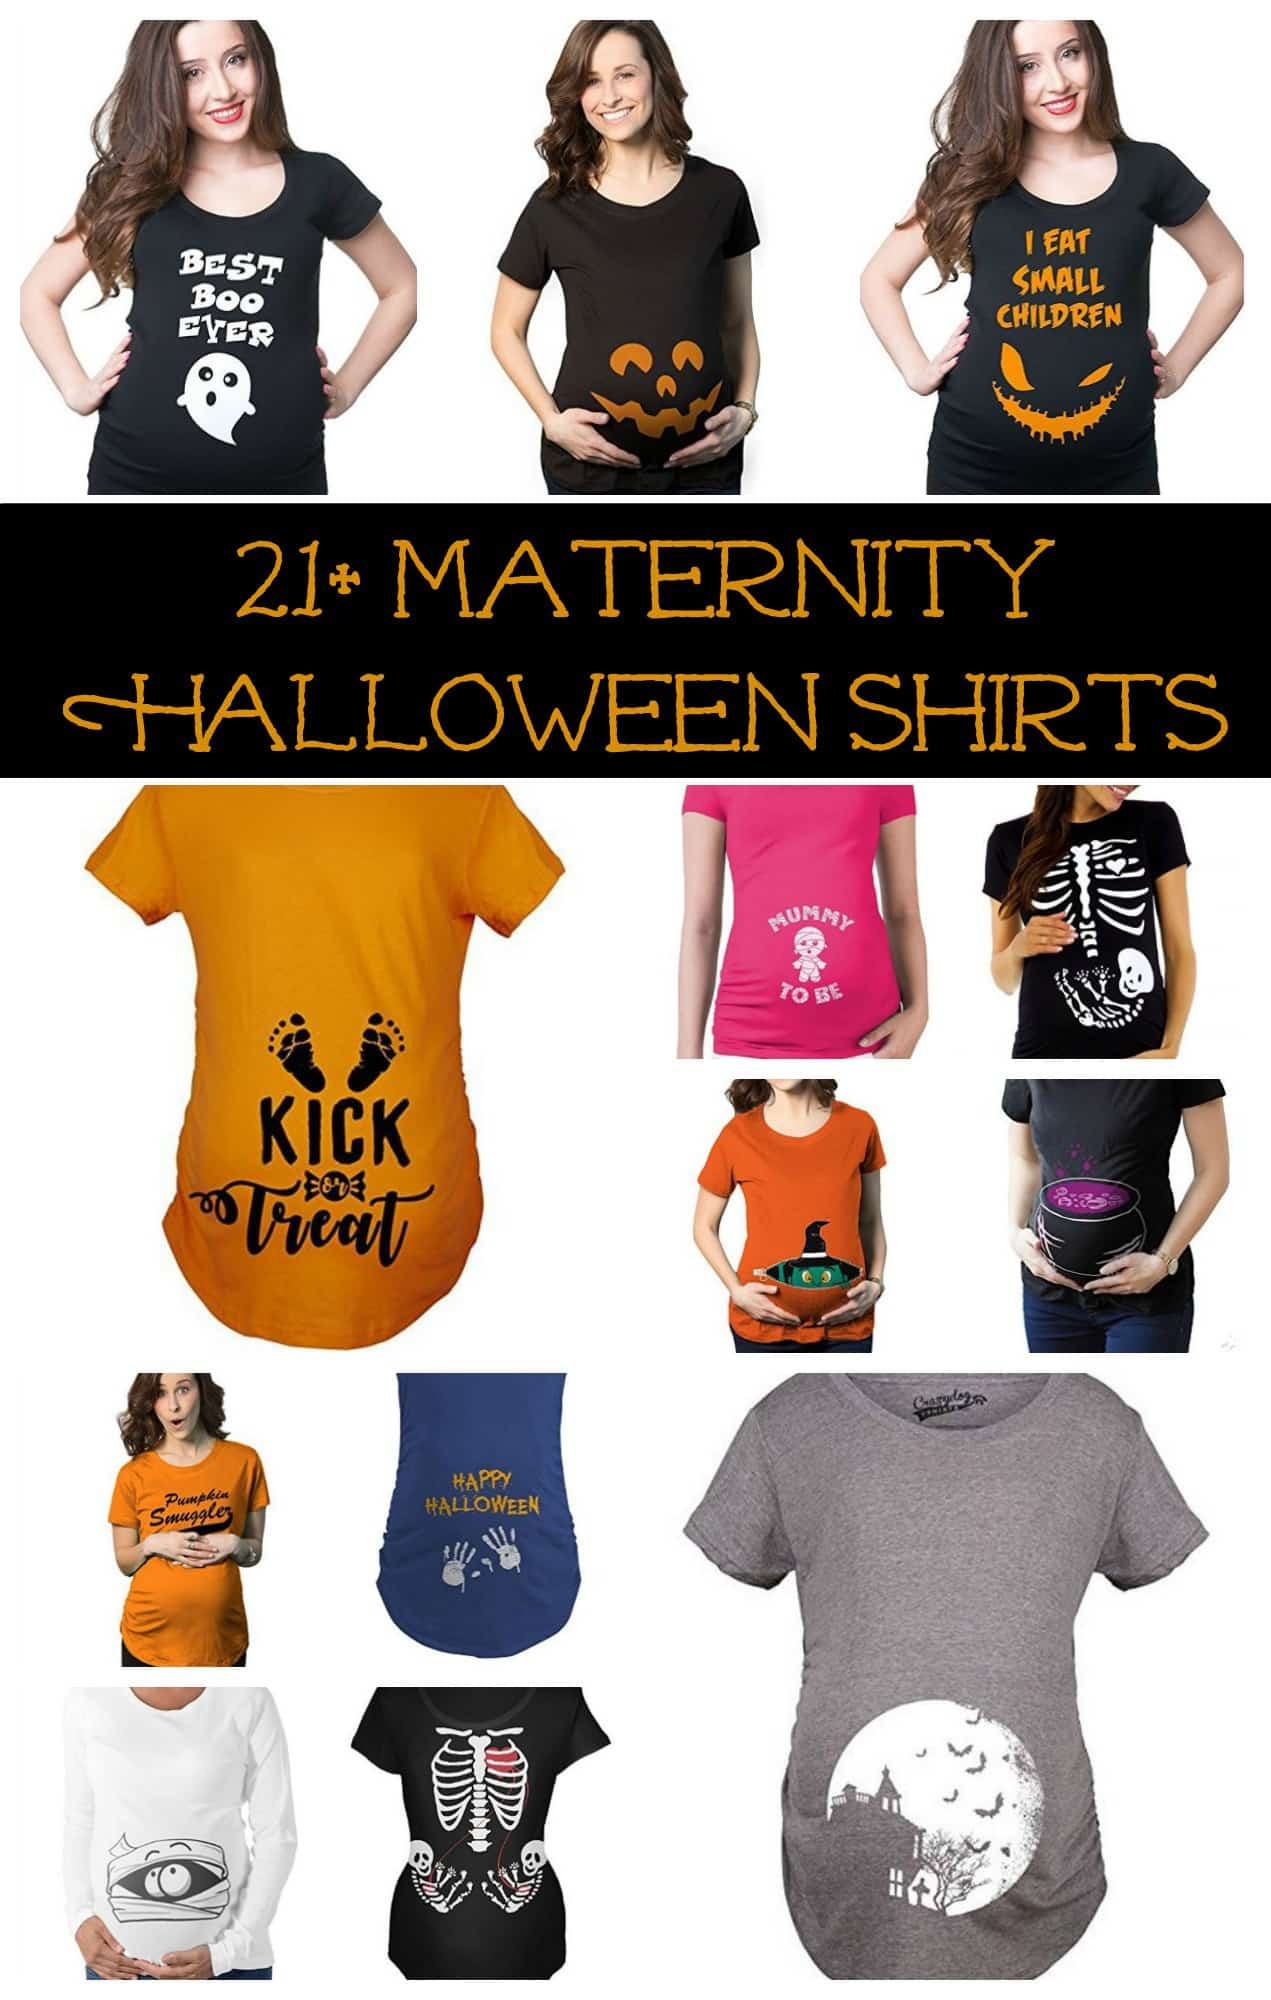 21+ maternity halloween shirts for pregnant moms - little miss kate